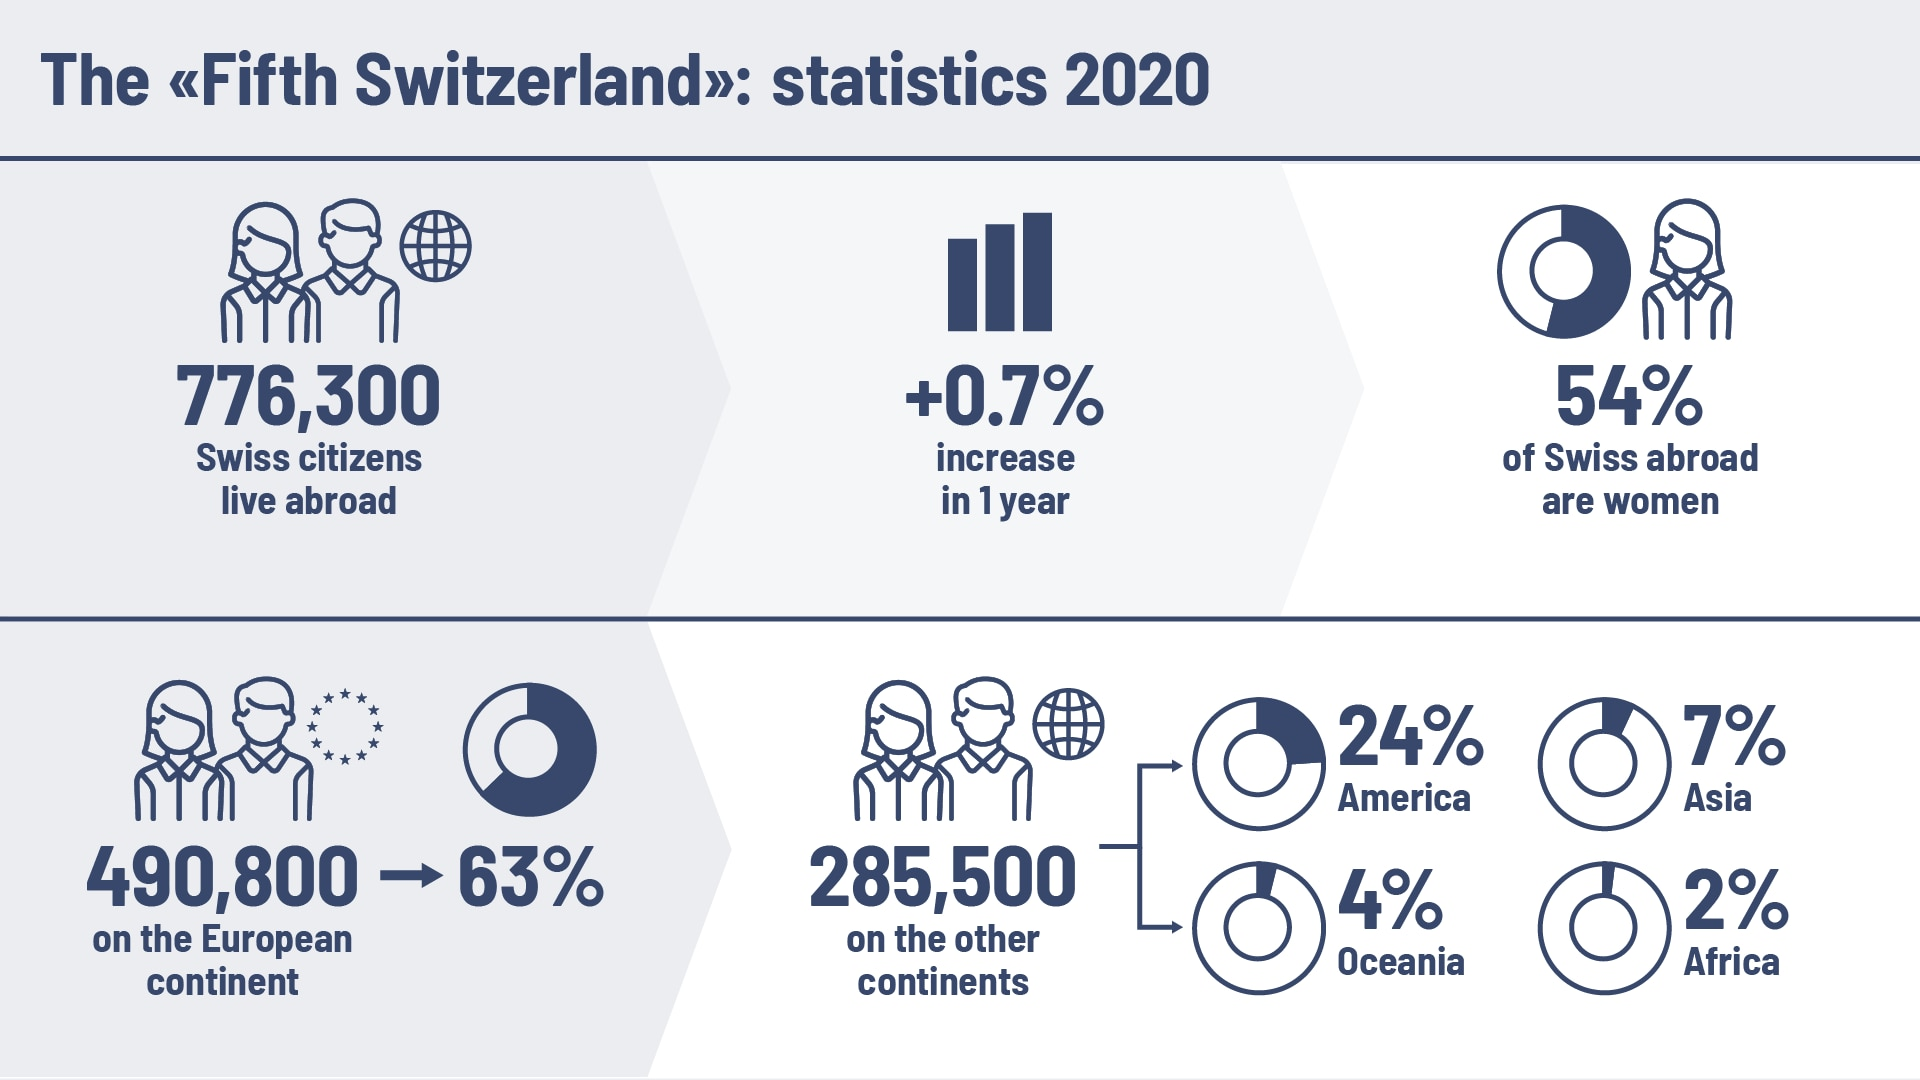 Six statistics show the development of Swiss citizens living abroad in 2020.